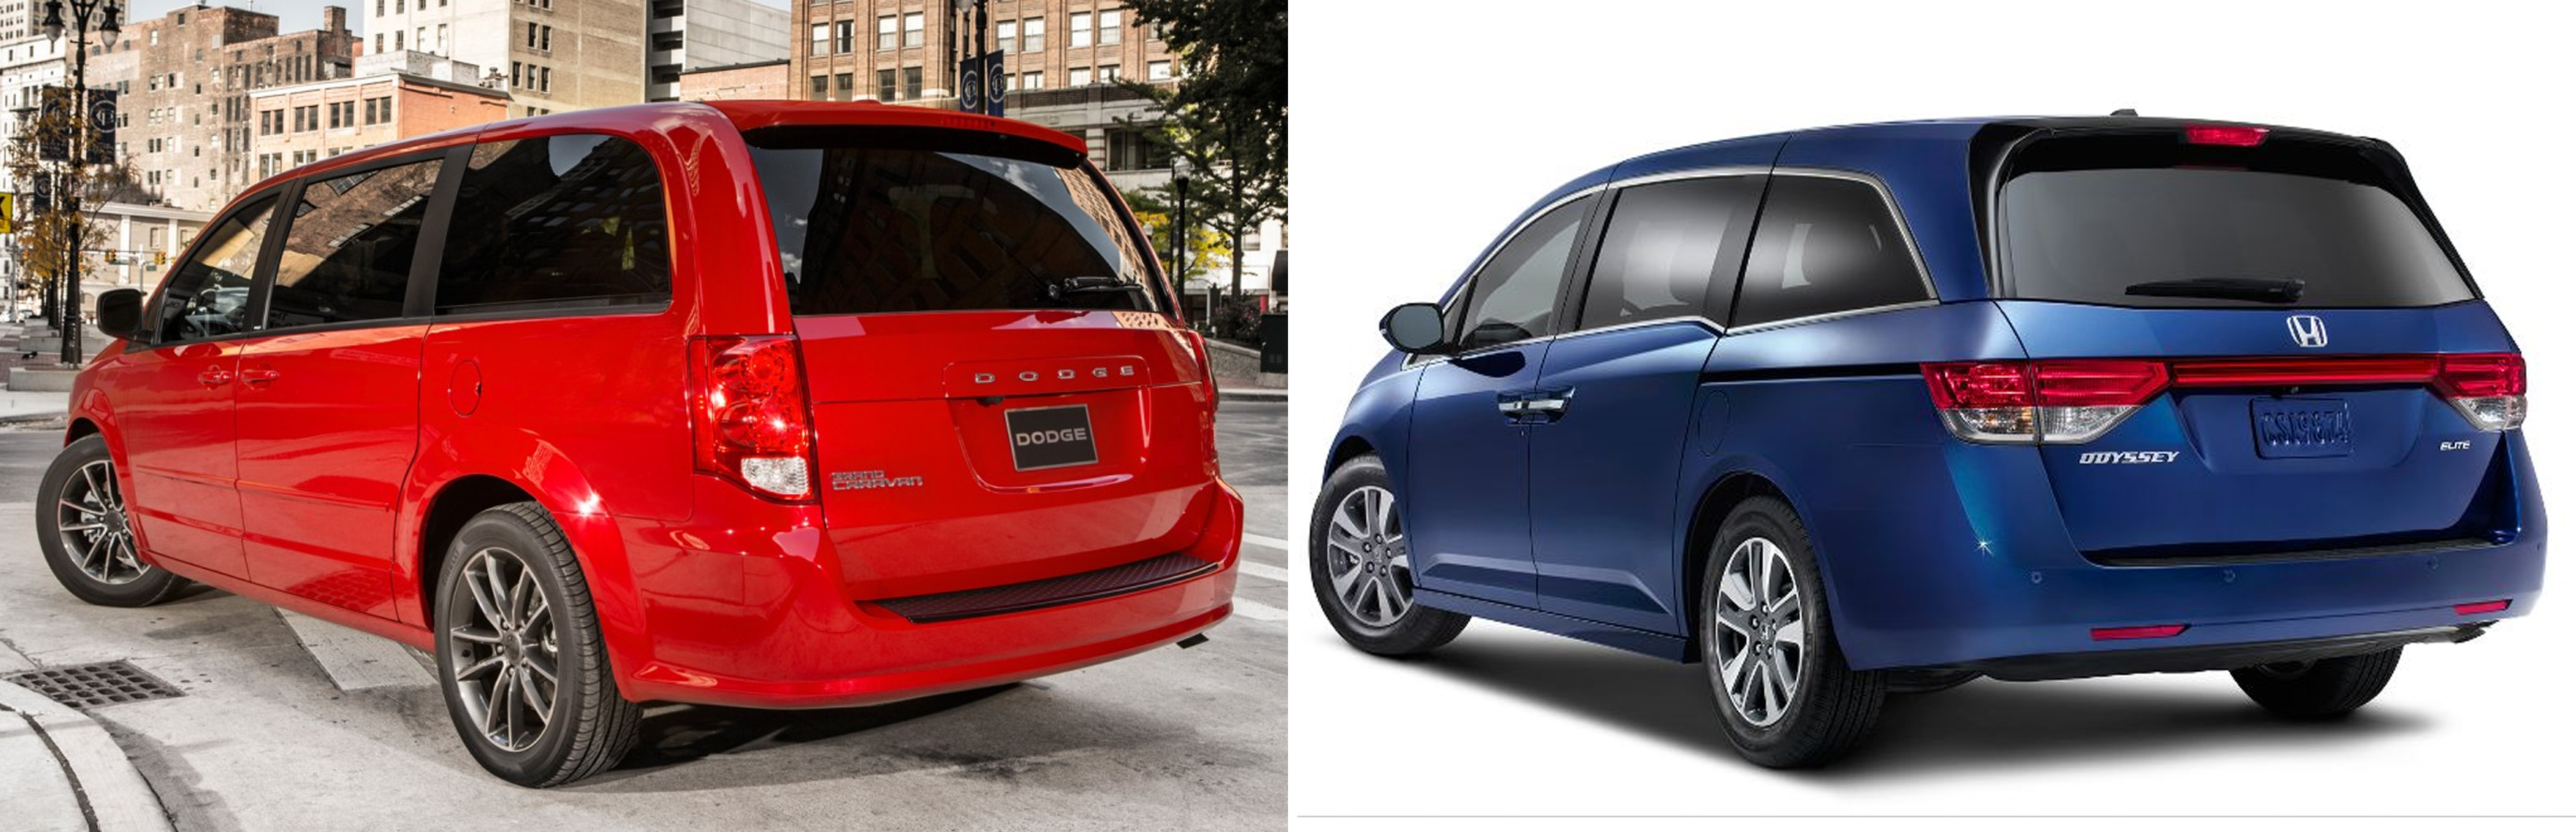 2014 dodge grand caravan vs 2014 honda odyssey compare. Black Bedroom Furniture Sets. Home Design Ideas